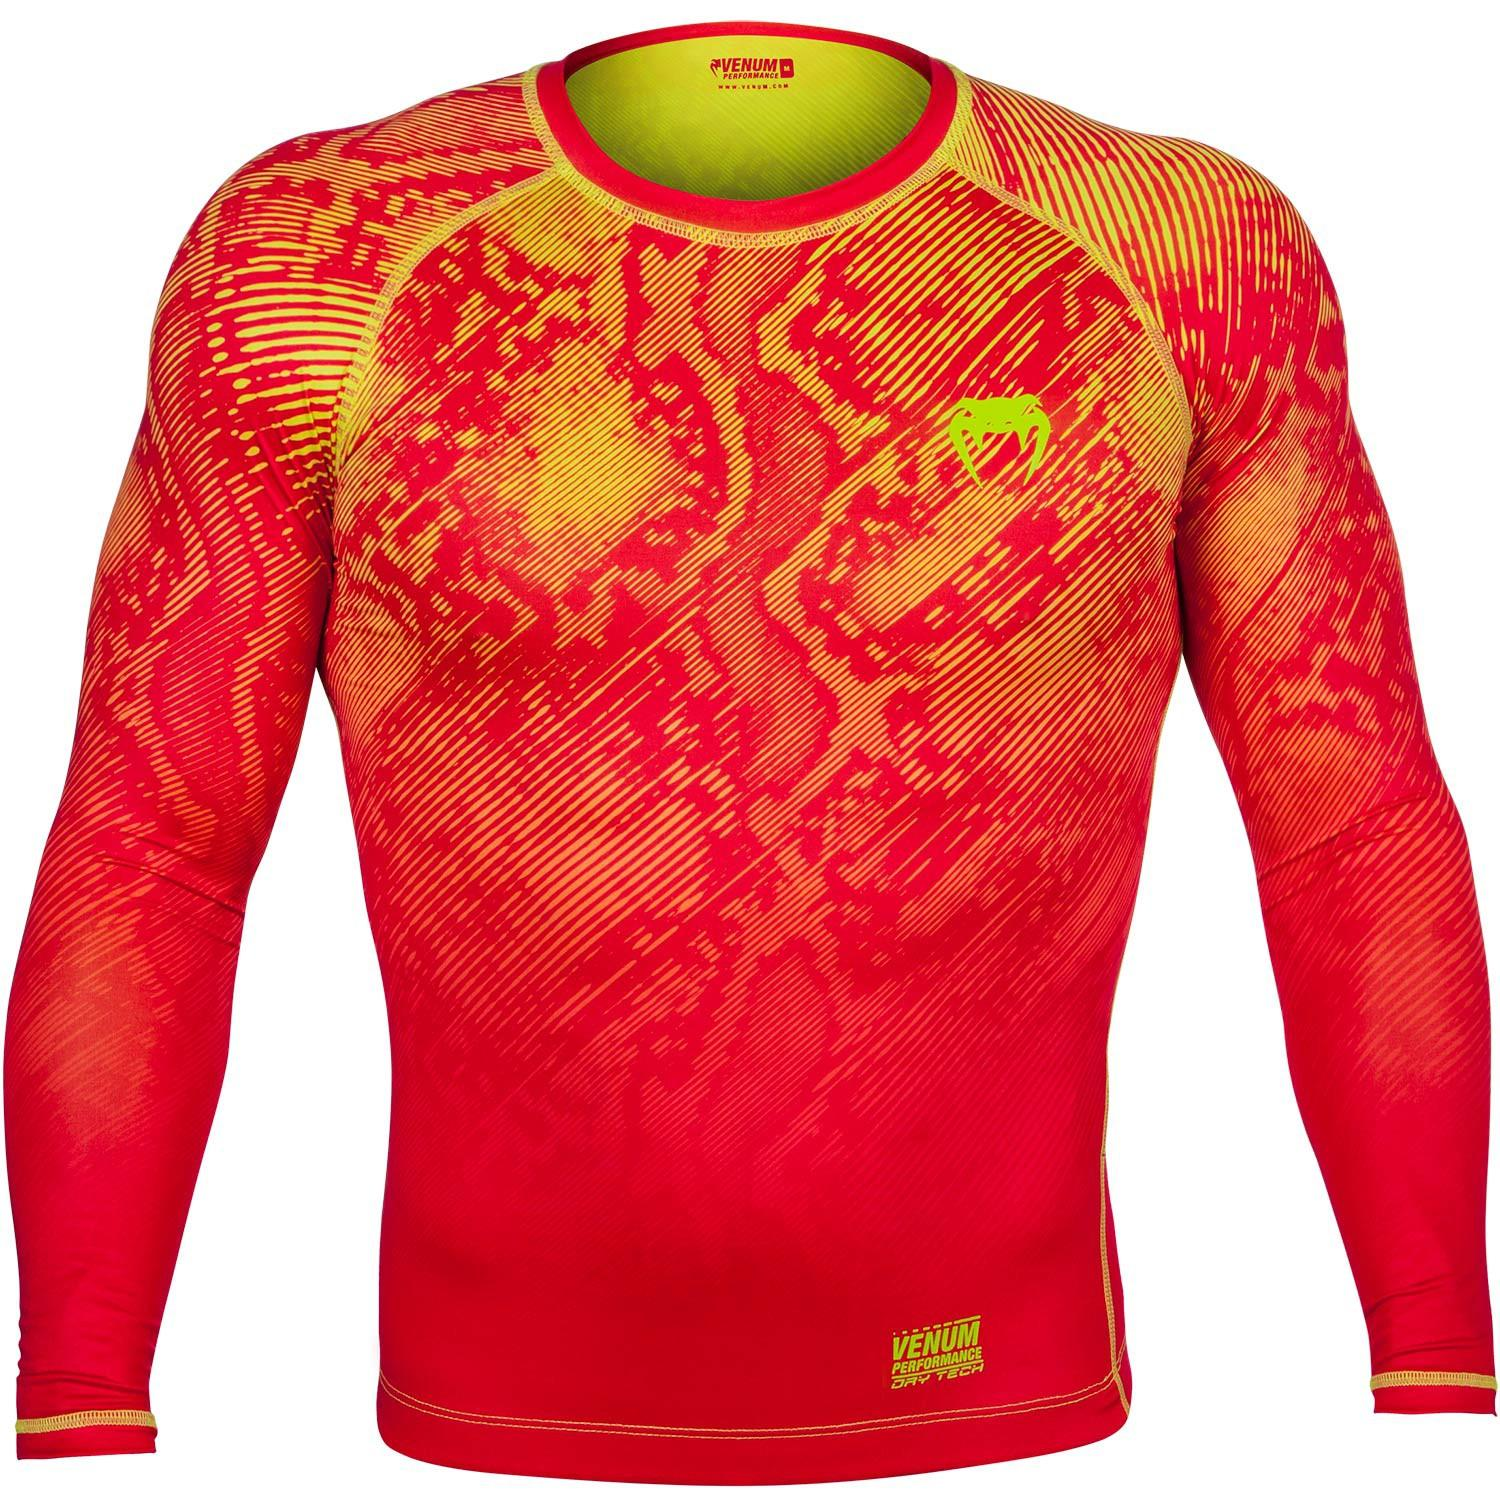 Venum Fusion Compression T-shirt - Black Red Long Sleeves